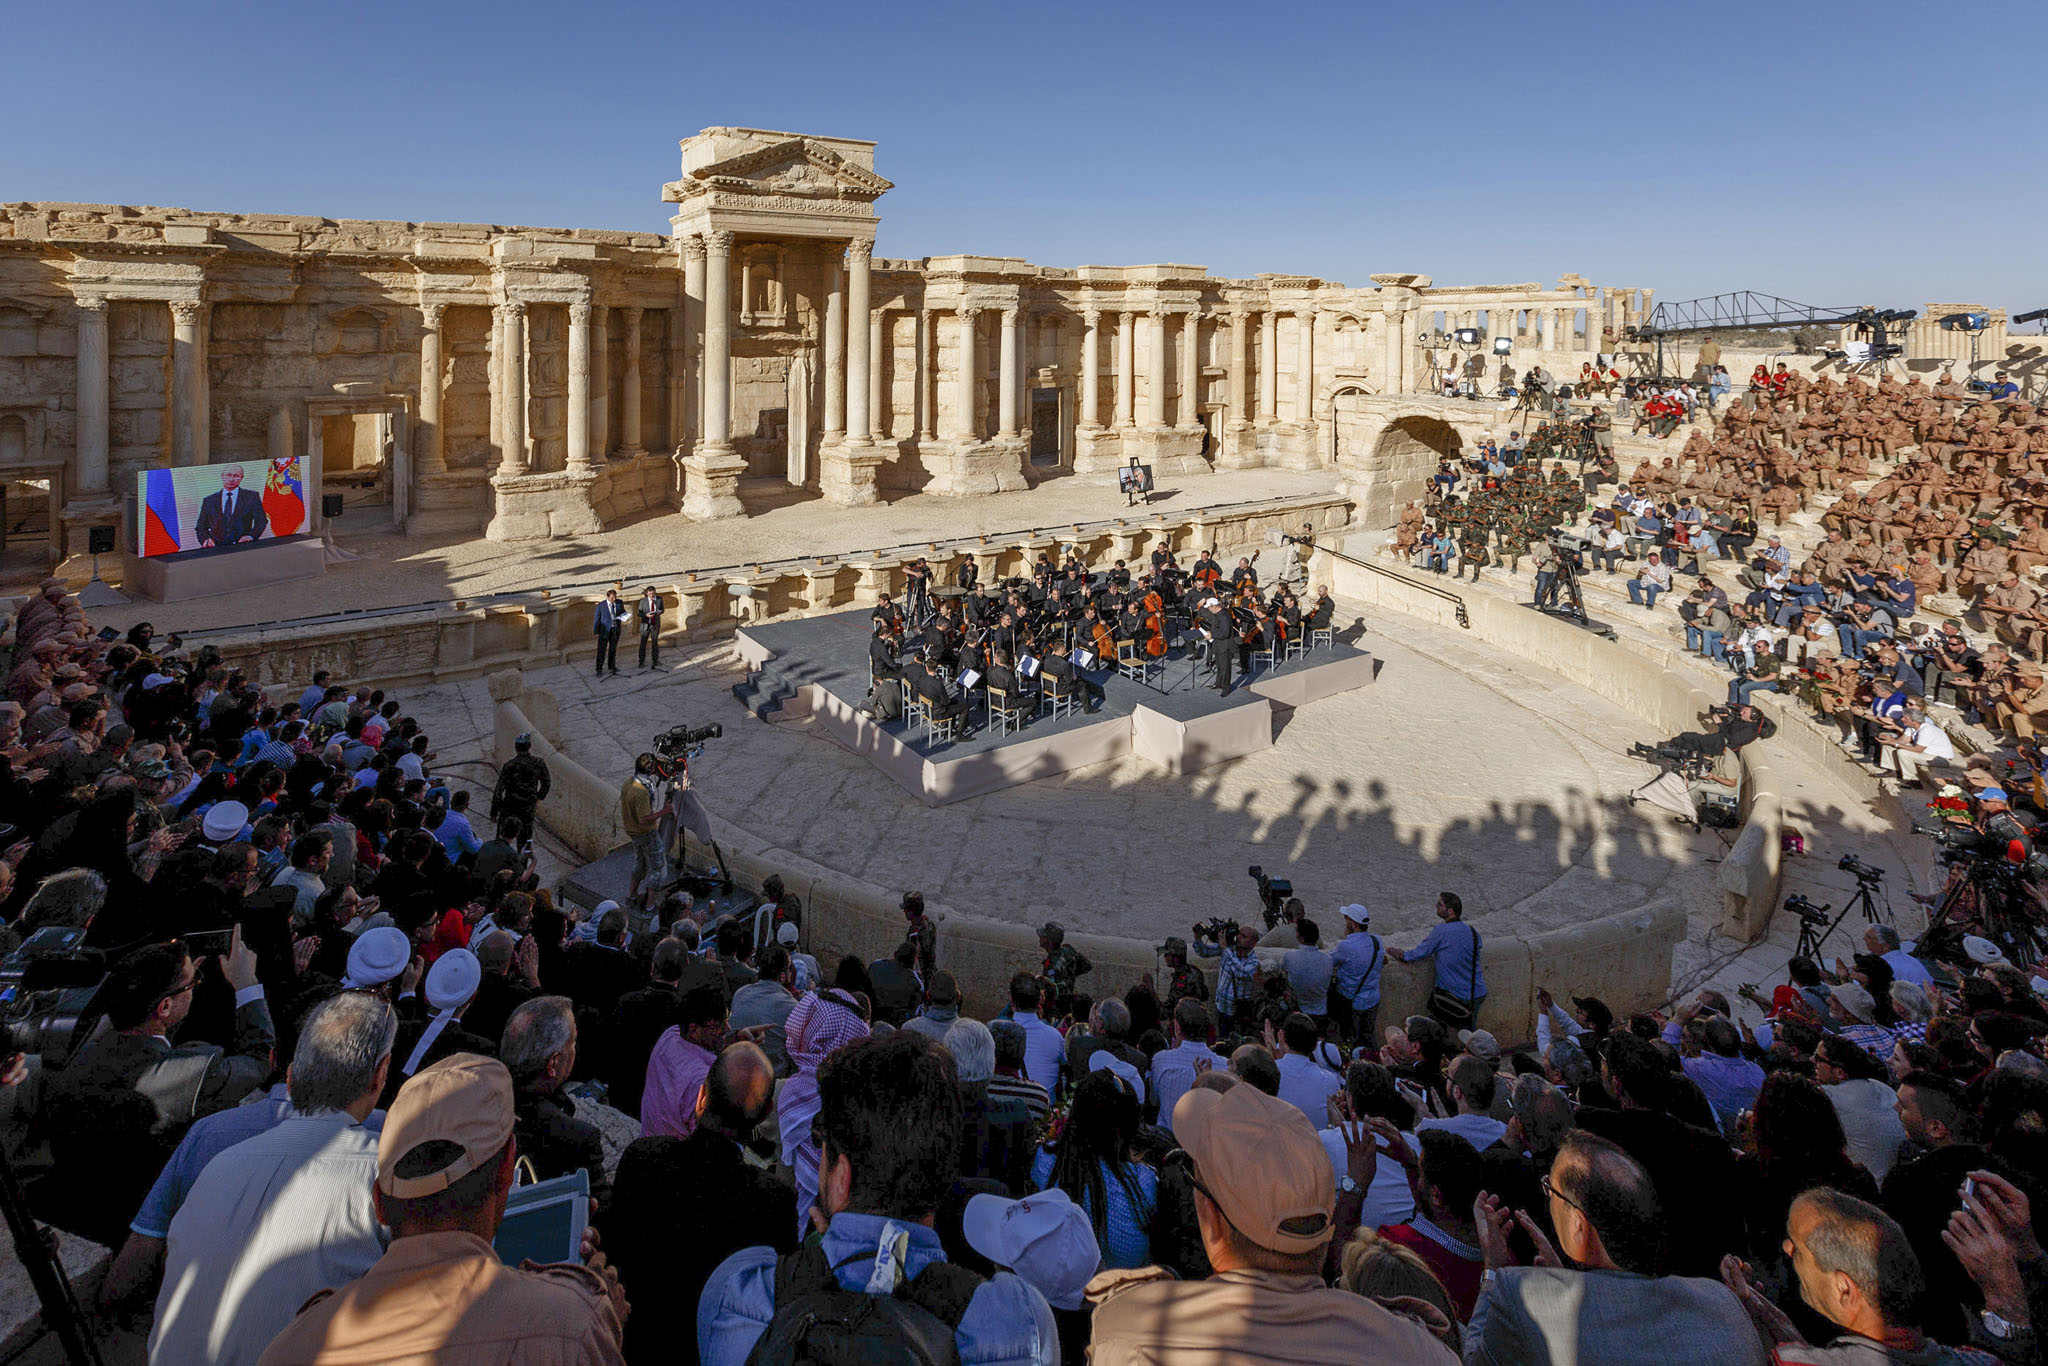 This Thursday, May 5, 2016 photo provided by Russian Defense Ministry Press Service, shows the concert at the UNESCO world heritage site of Palmyra, the central city of Homs, where renowned conductor Valery Gergiev leads a performance by the Mariinsky Symphony Orchestra from St. Petersburg, Syria. The renowned Russian conductor led a triumphant concert Thursday in the ruins of the ancient Syrian city of Palmyra, once terrorized by the Islamic State group, even as an airstrike on a refugee camp in the north left dozens of people dead and dozens wounded, including many children. (Olga Balashova/Russian Defense Ministry Press Service via AP)